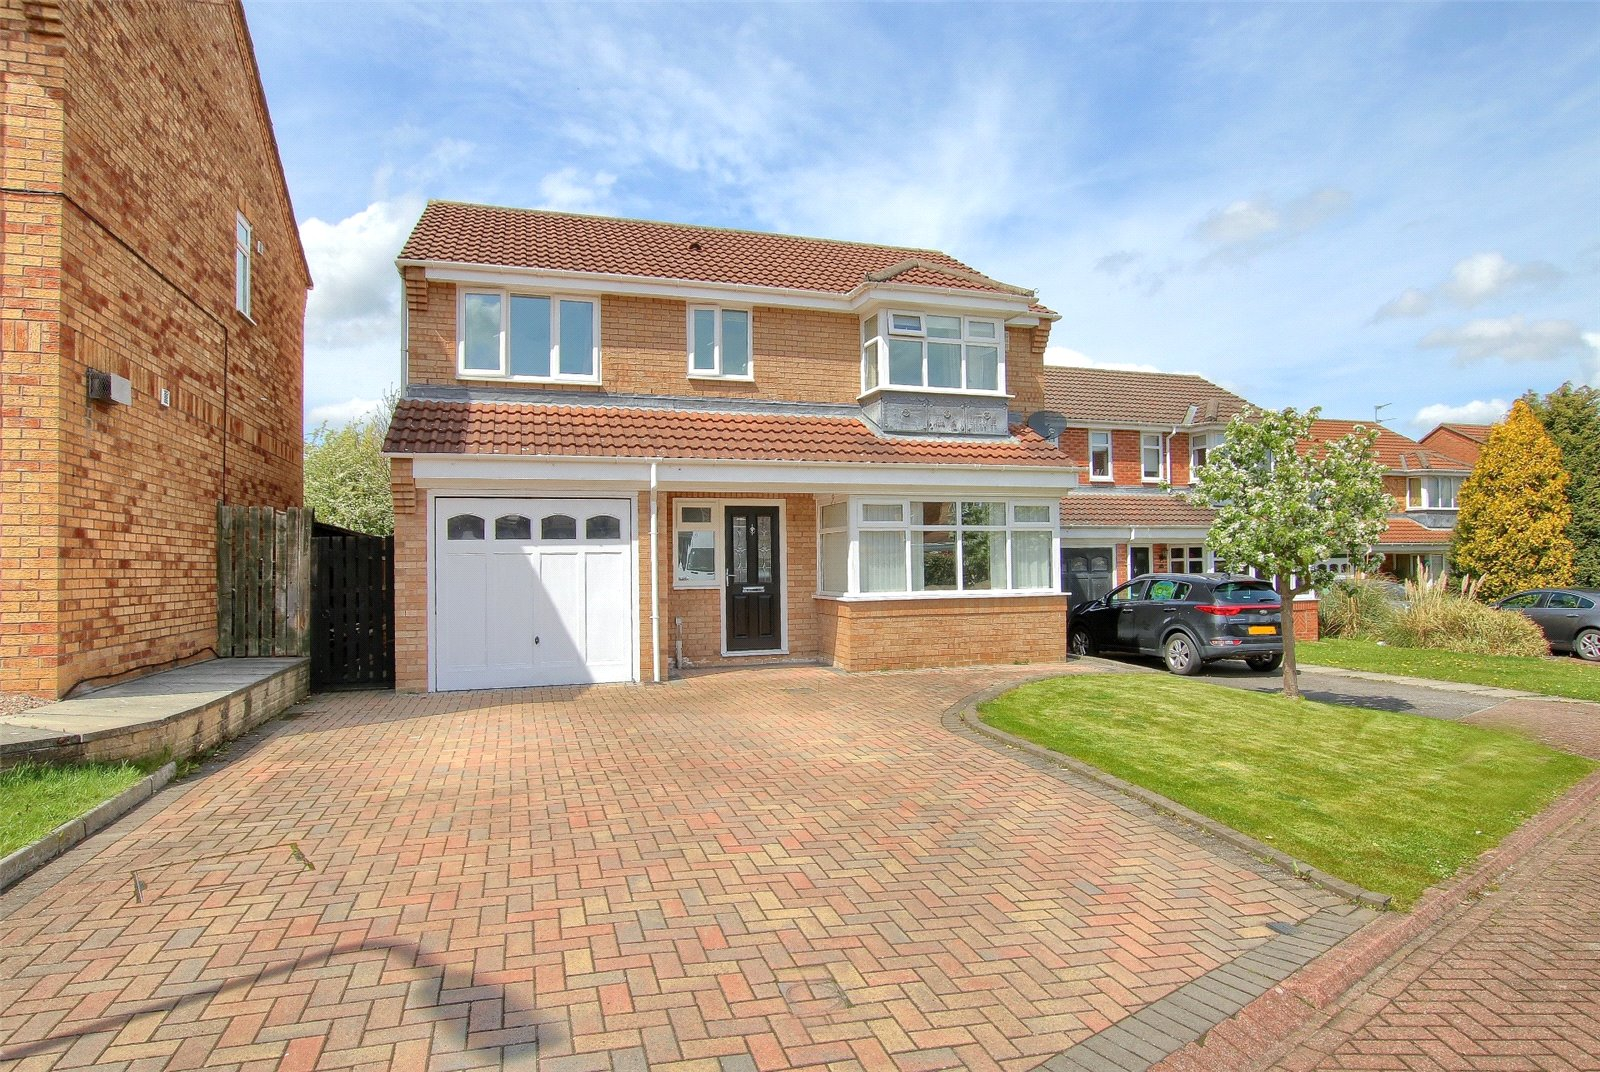 4 bed house for sale in Castlemartin, Ingleby Barwick - Property Image 1